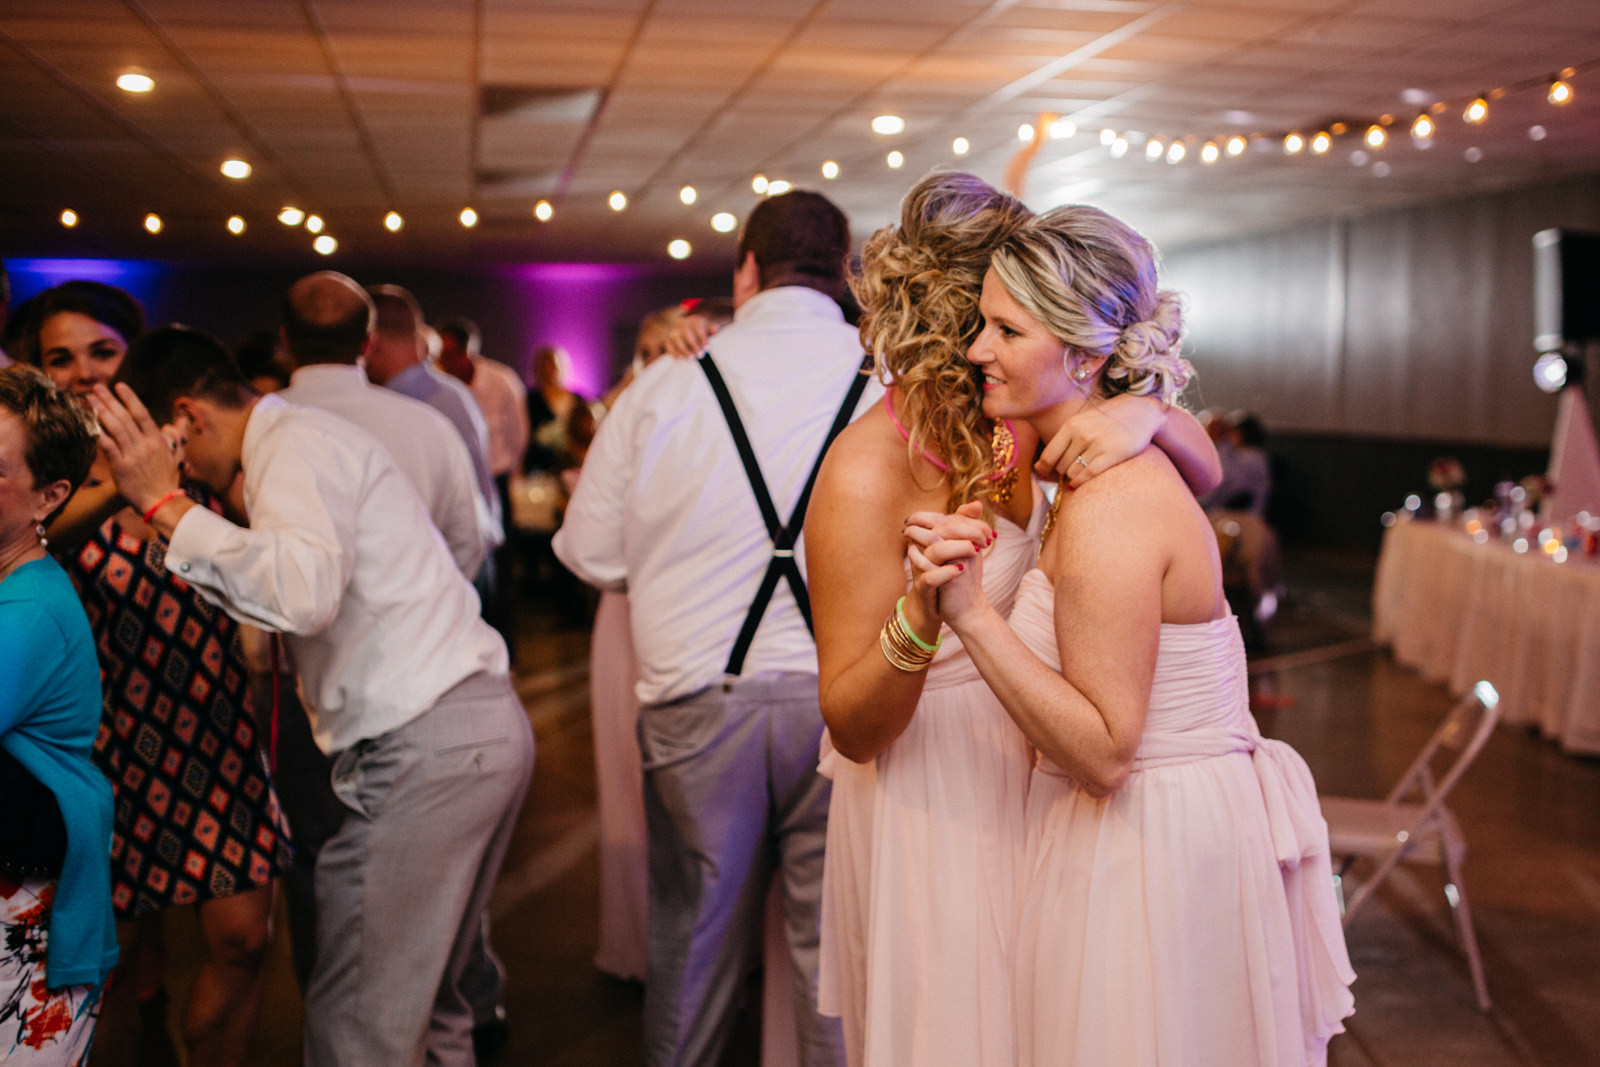 Couples dance at wedding reception at Fulton County Fairgrounds